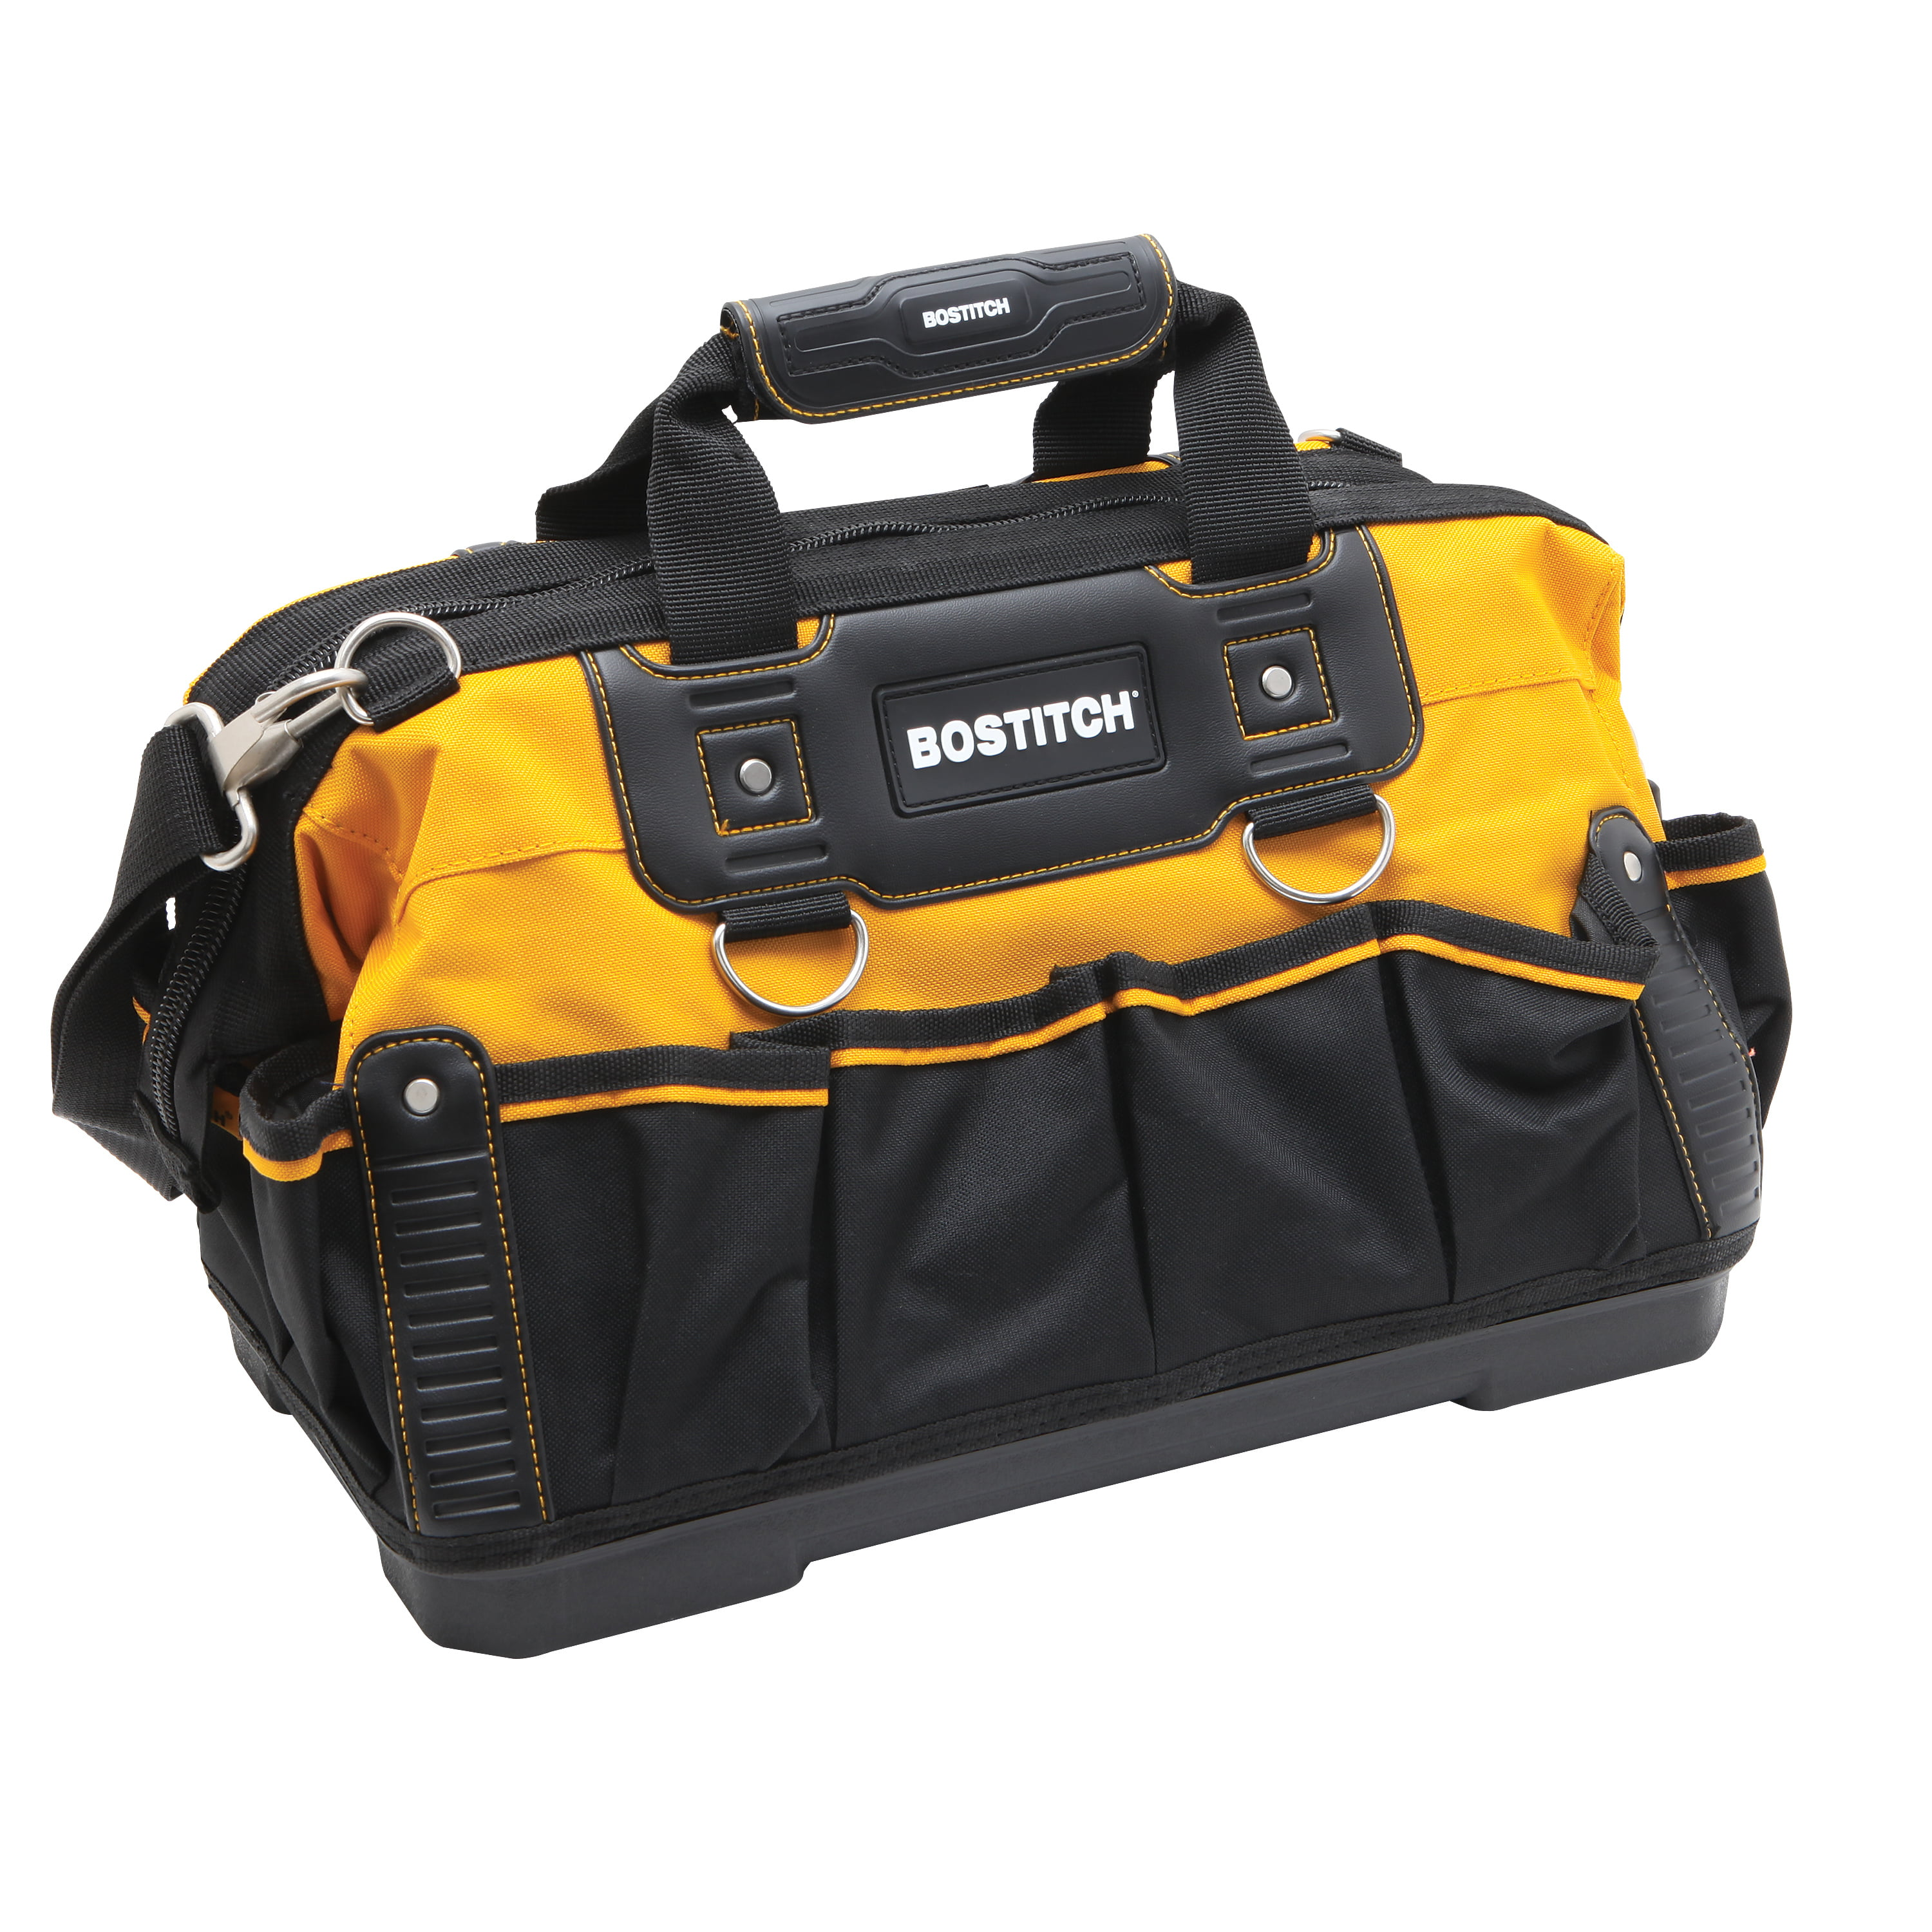 BOSTITCH BTST516155 16-Inch Open Mouth Tool Bag by Stanley Black & Decker